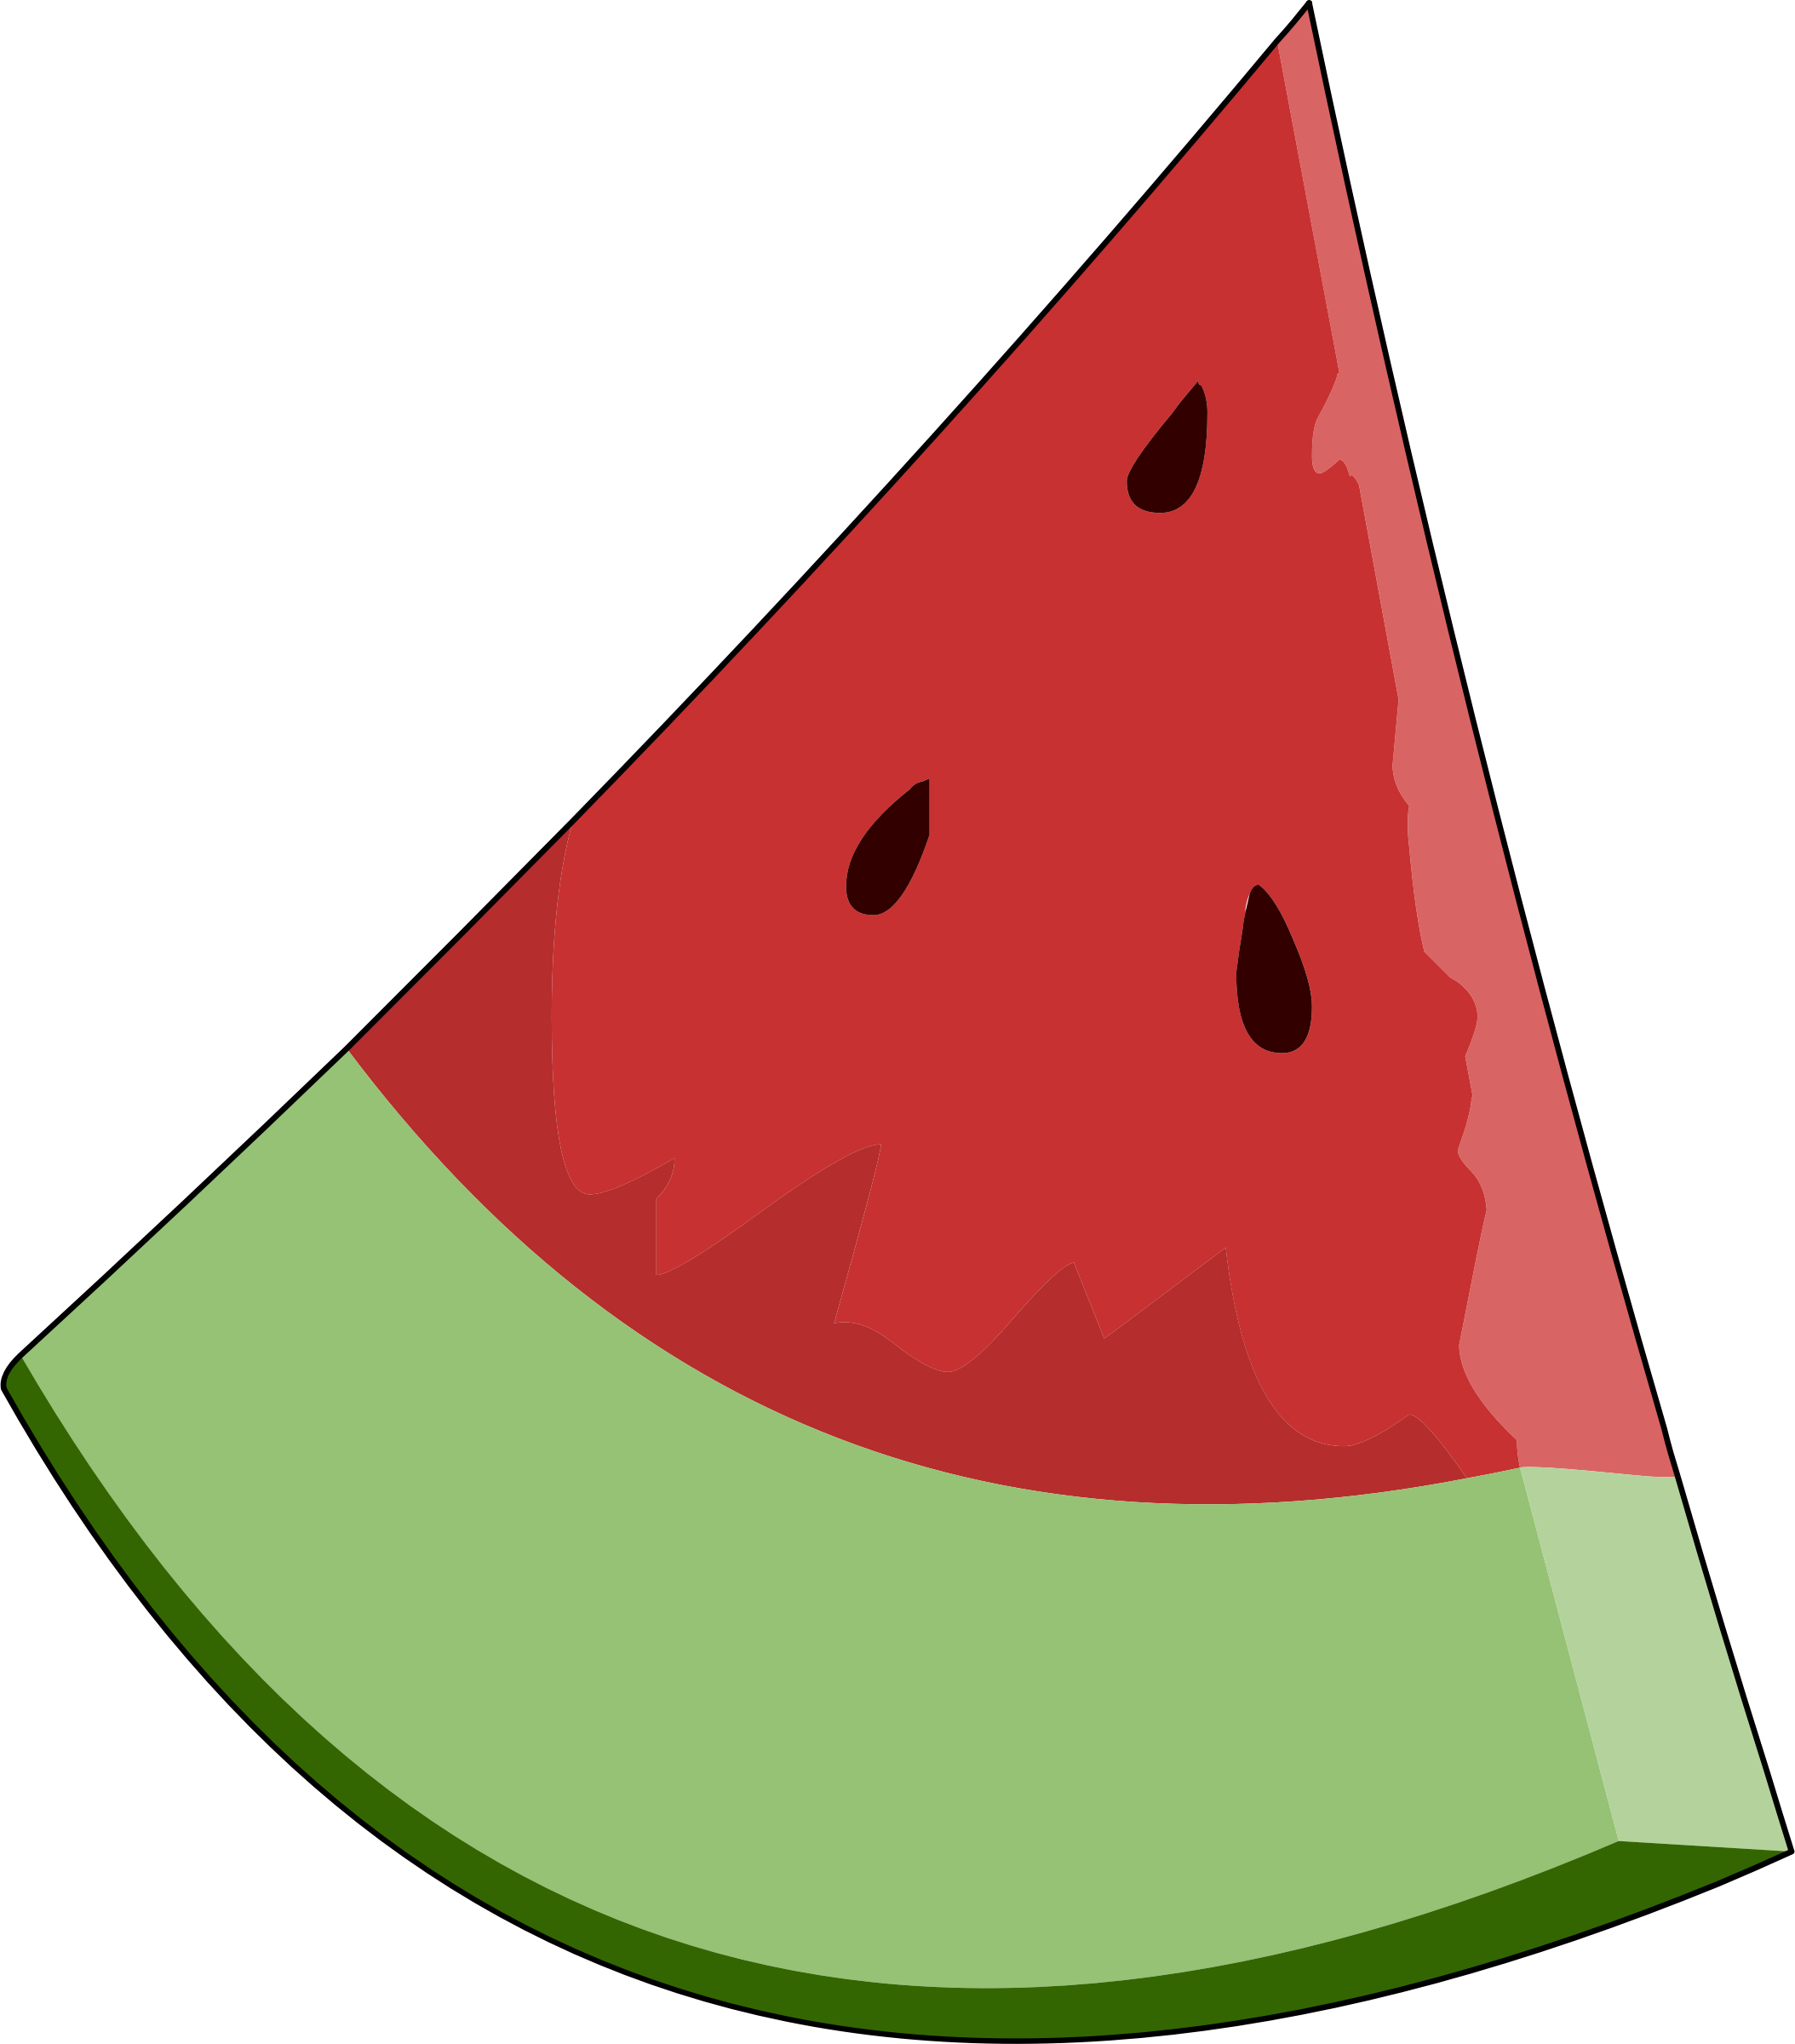 Slice wedge big image. Clipart fruit watermelon